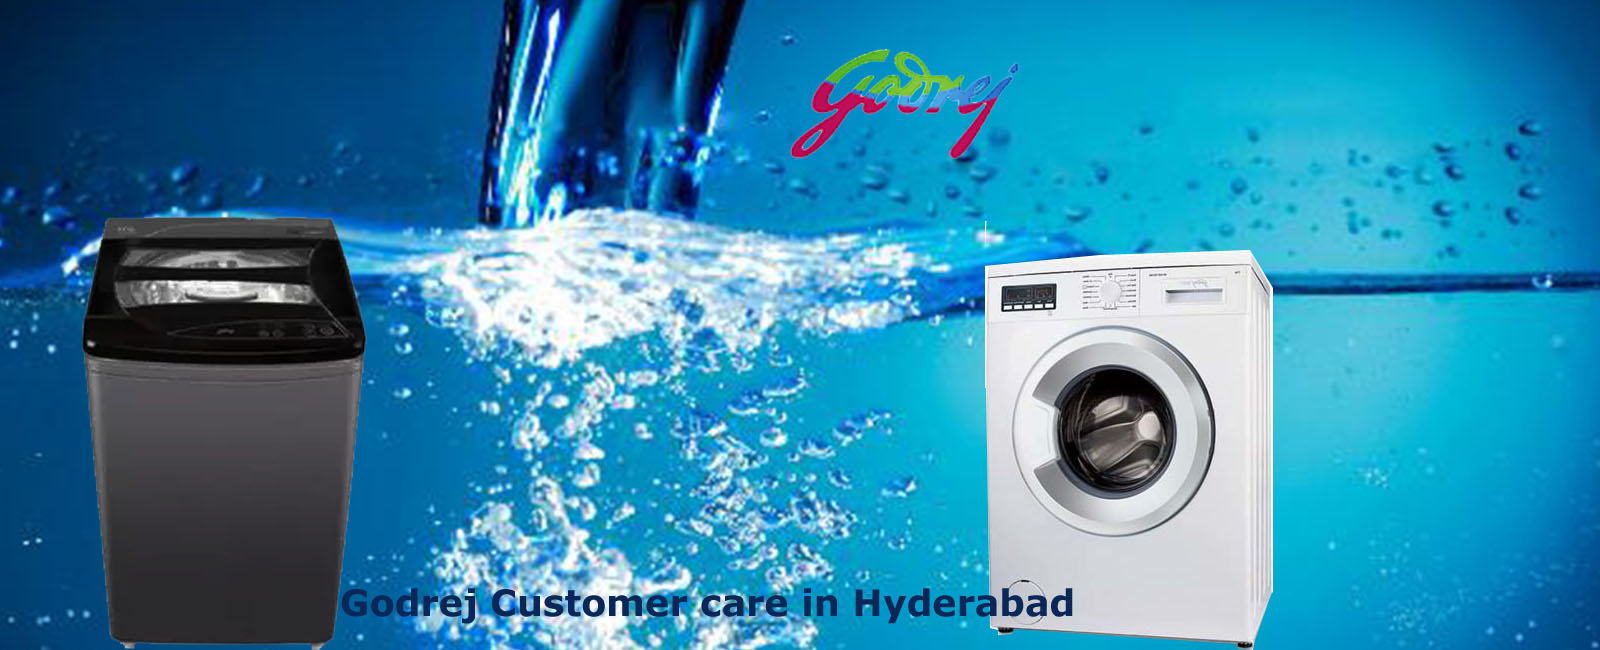 godrej ac service center in hyderabad - call now to solve